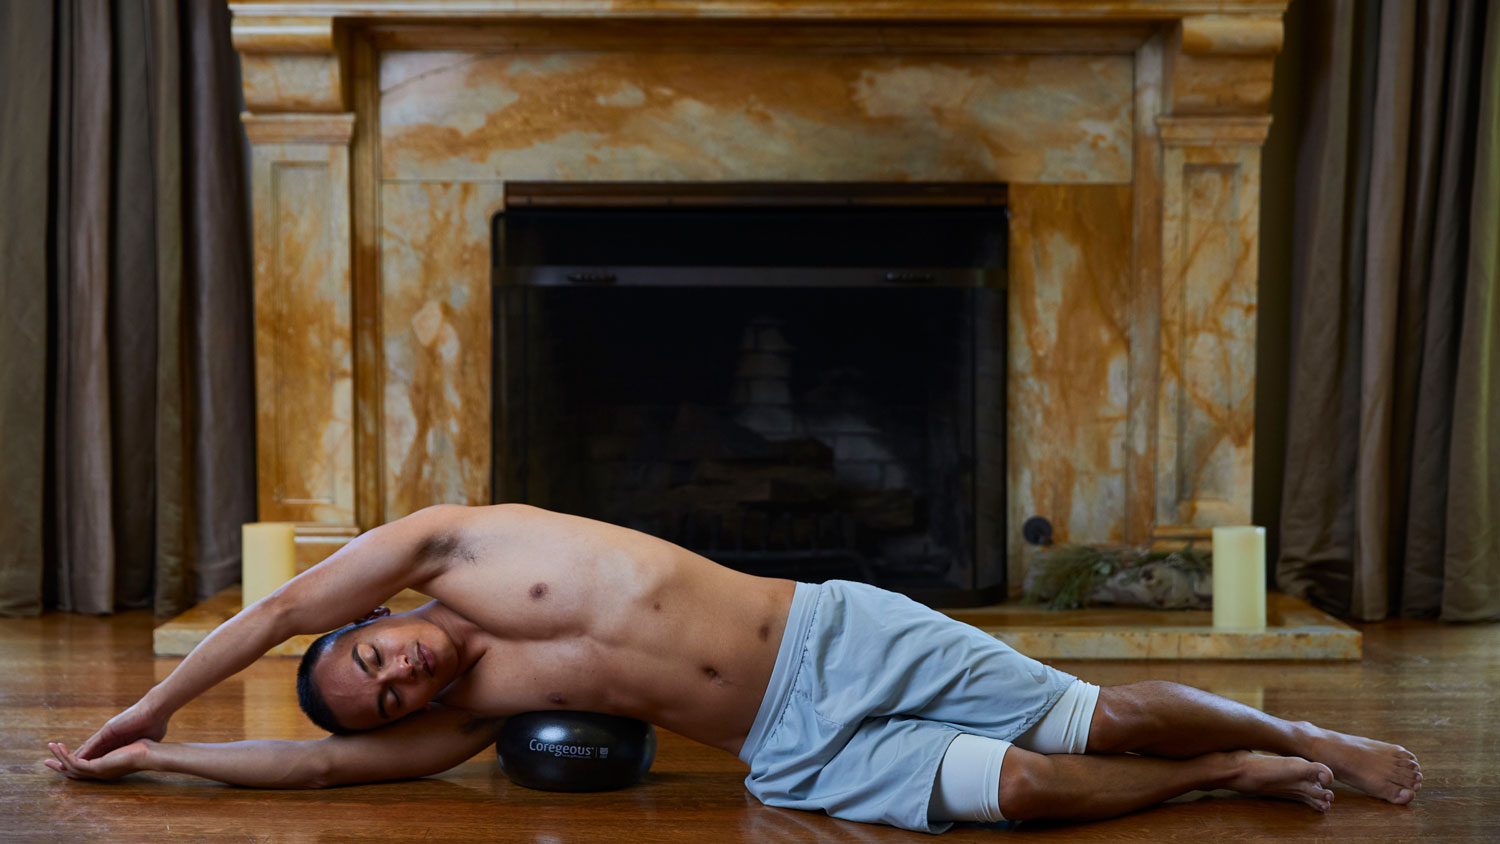 Yoga Tune Up Teacher Mike Berina lays on his side with the Coregeous ball tucked within his waist to encourage self-massage the muscles of the respiratory system.